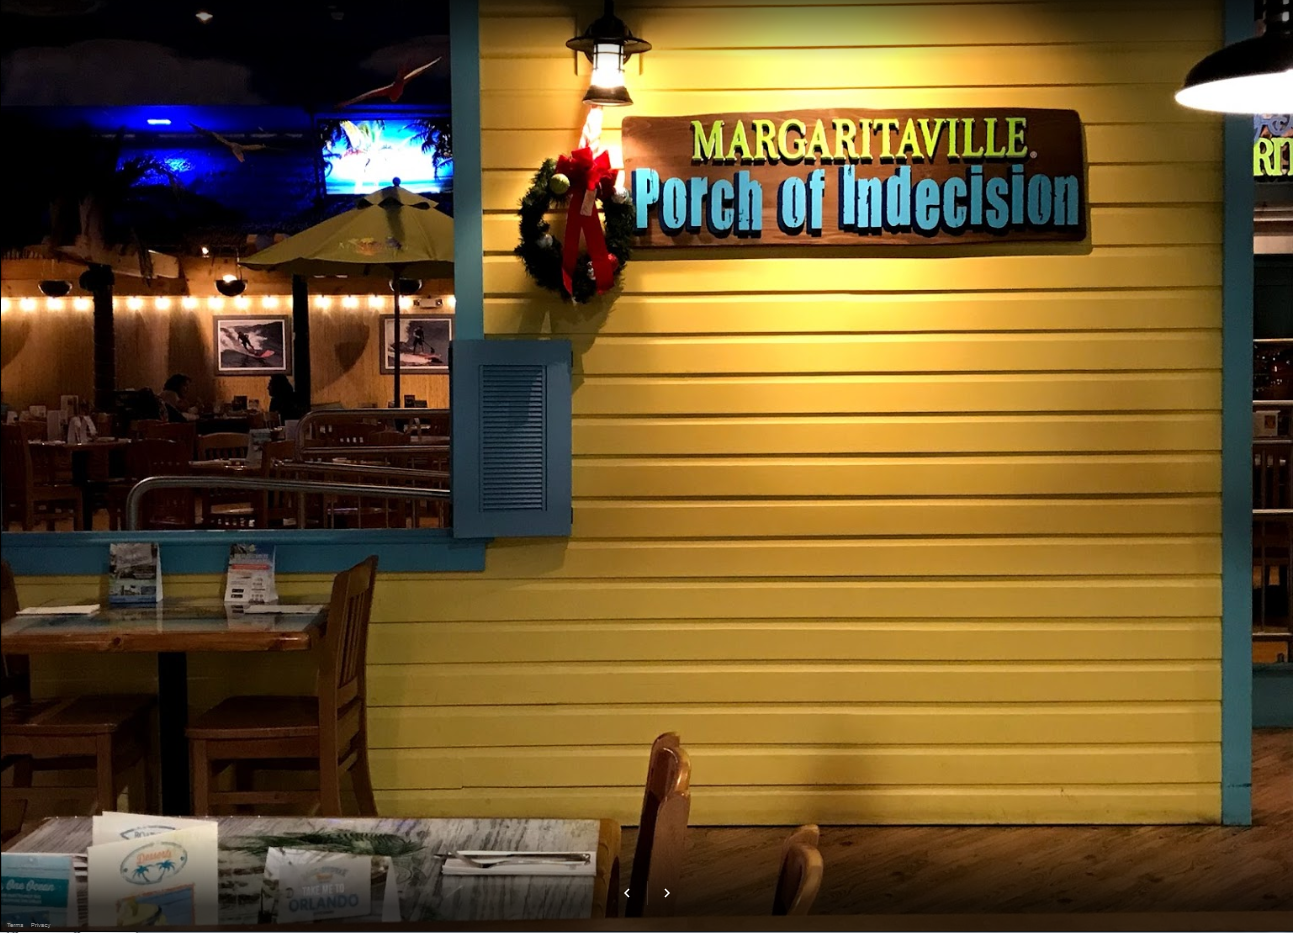 Porch of Indecision Render Margaritaville Destiny USA JImmy Buffet_Ramsgard